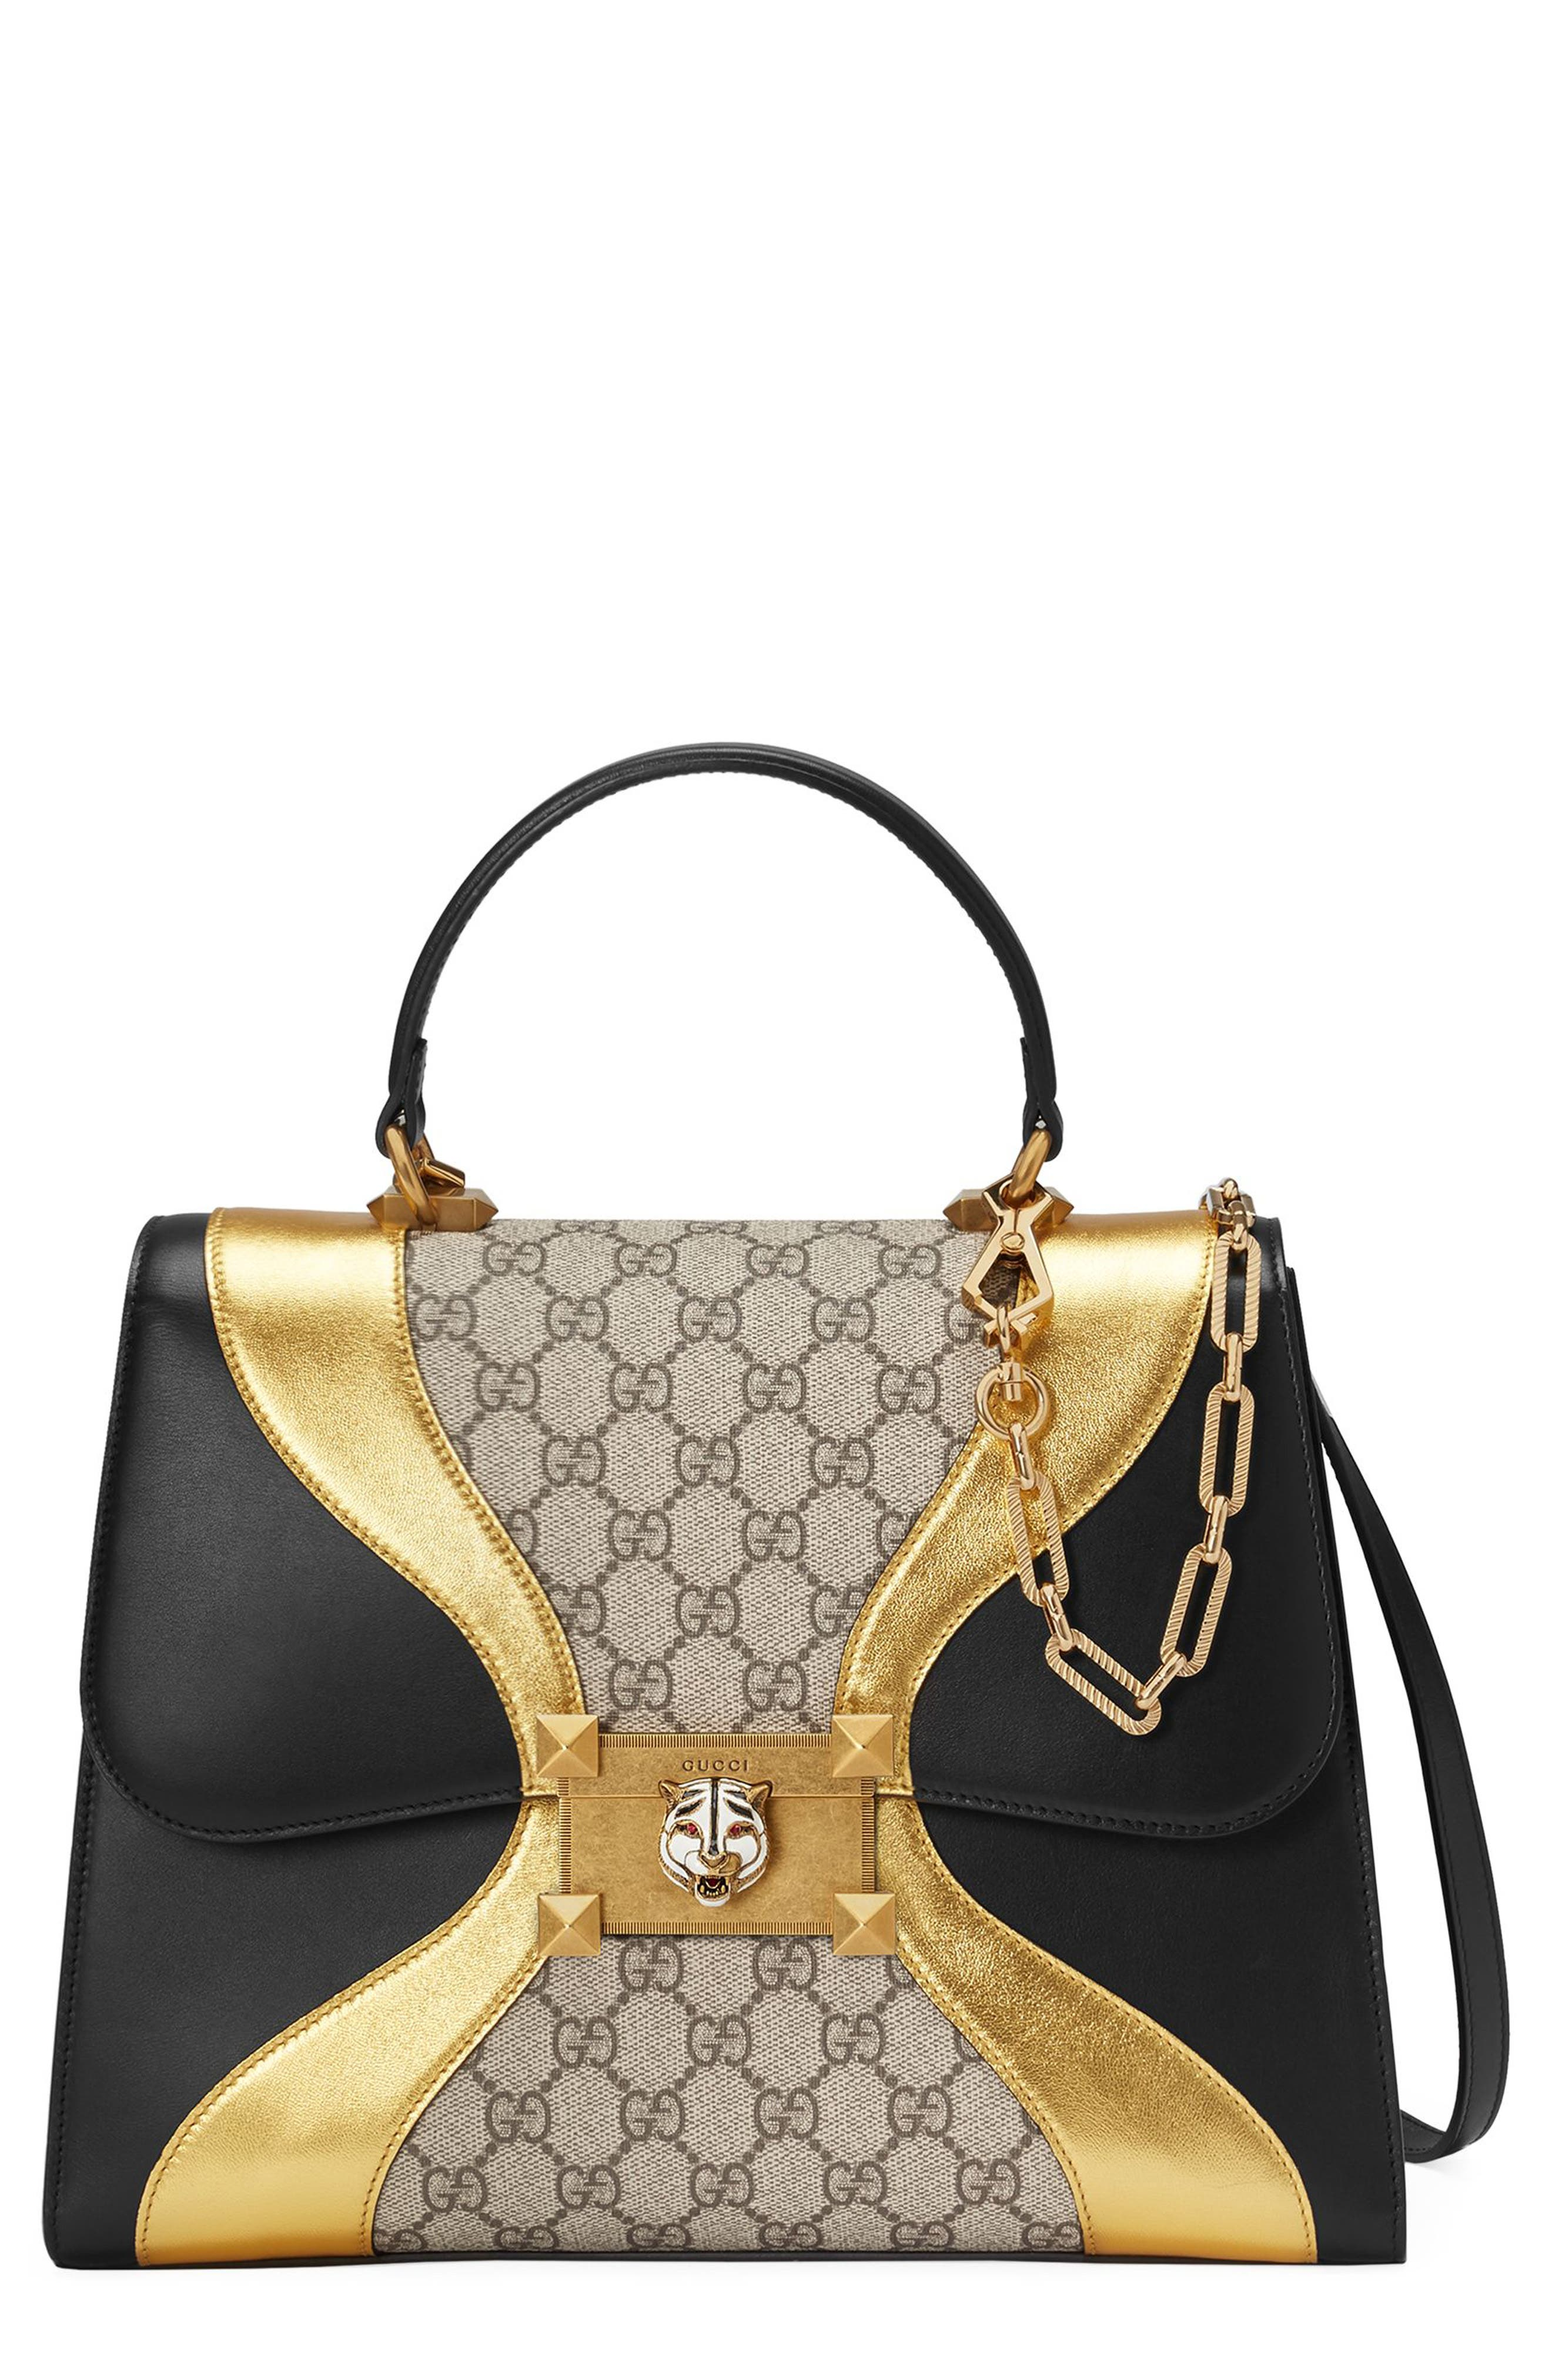 Main Image - Gucci Iside Top Handle GG Supreme & Leather Satchel